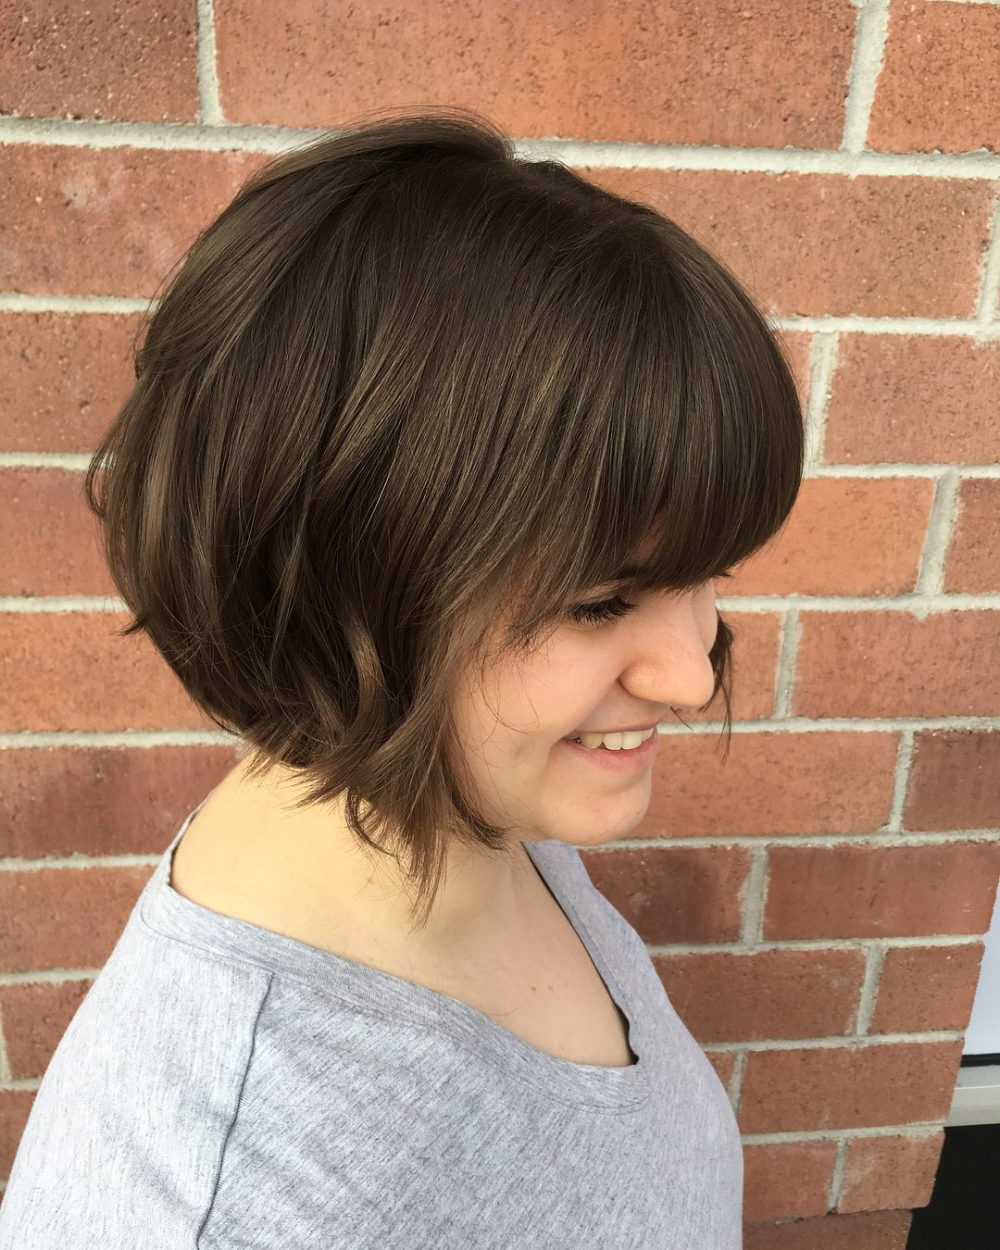 34 Greatest Short Haircuts And Hairstyles For Thick Hair For 2018 Pertaining To Short Haircut For Thick Wavy Hair (View 6 of 25)